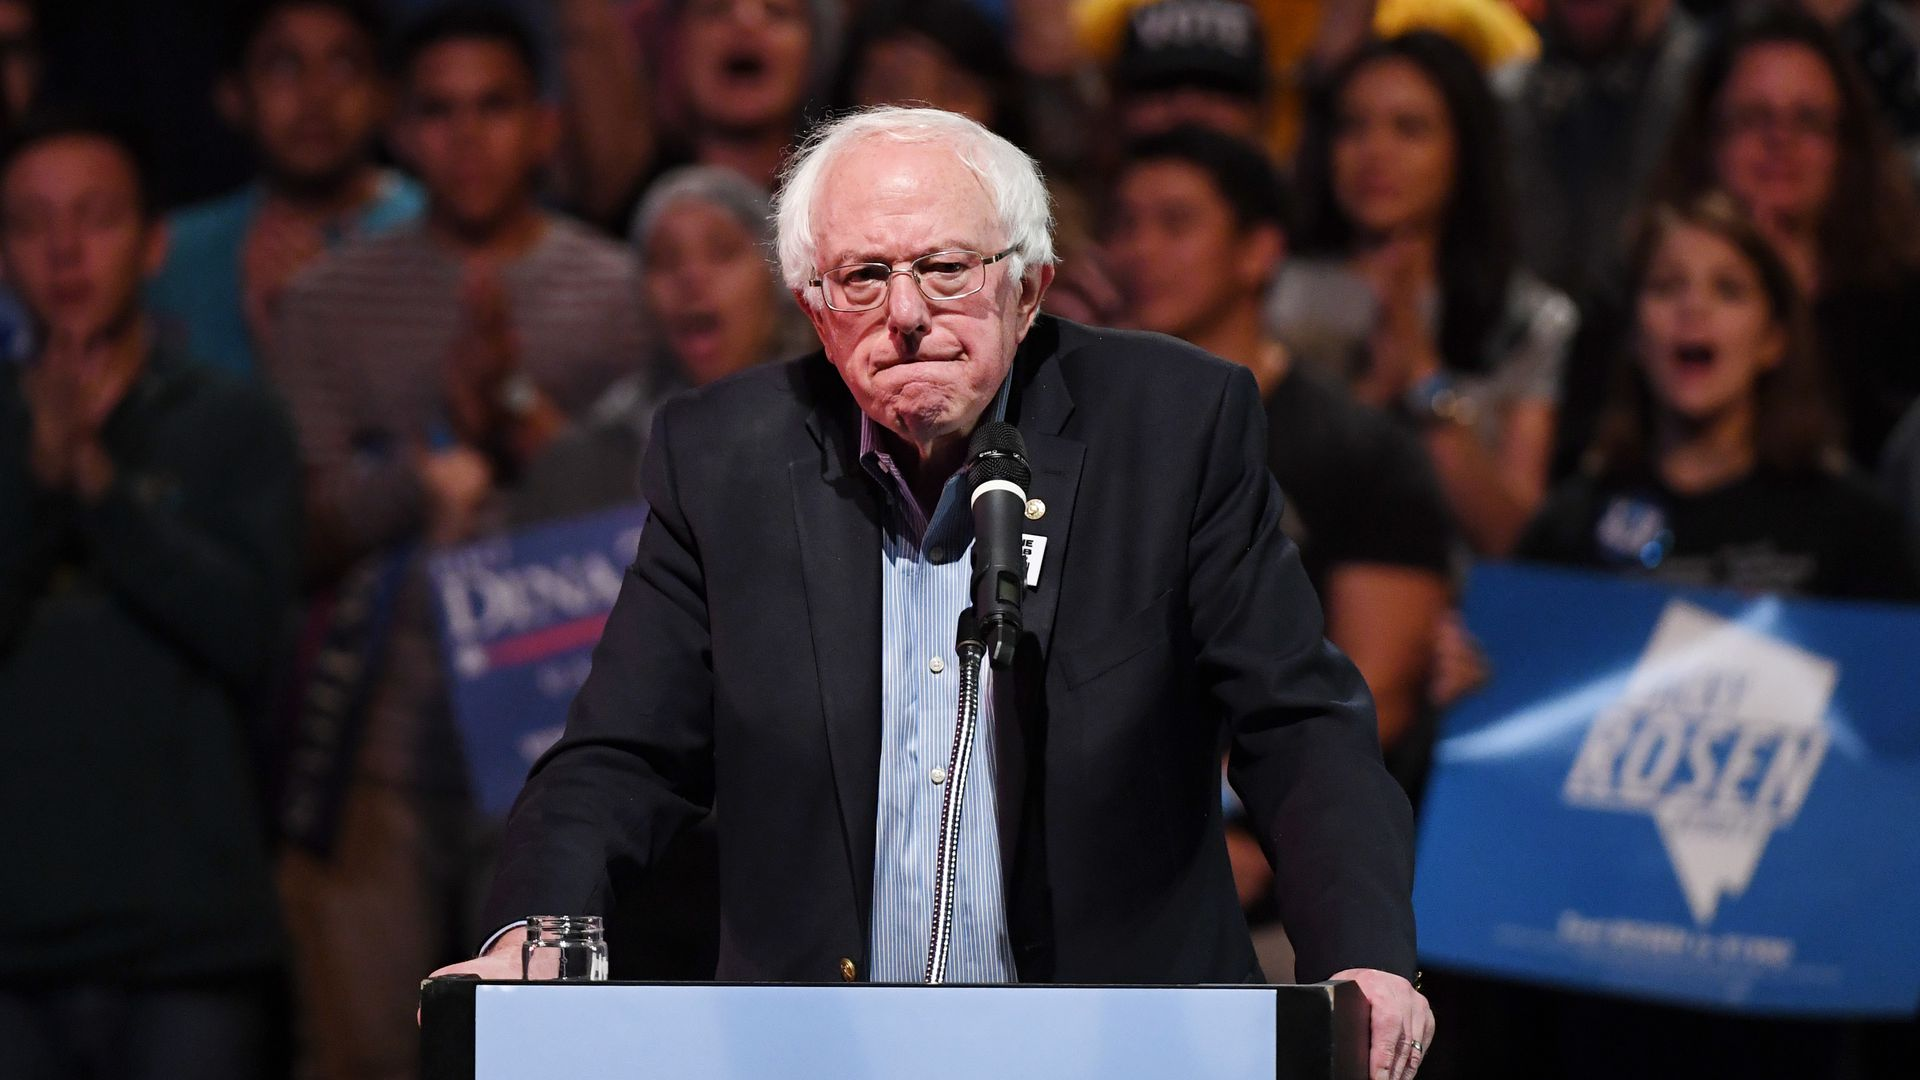 Bernie blames midterm losses in Florida and Georgia on white voters